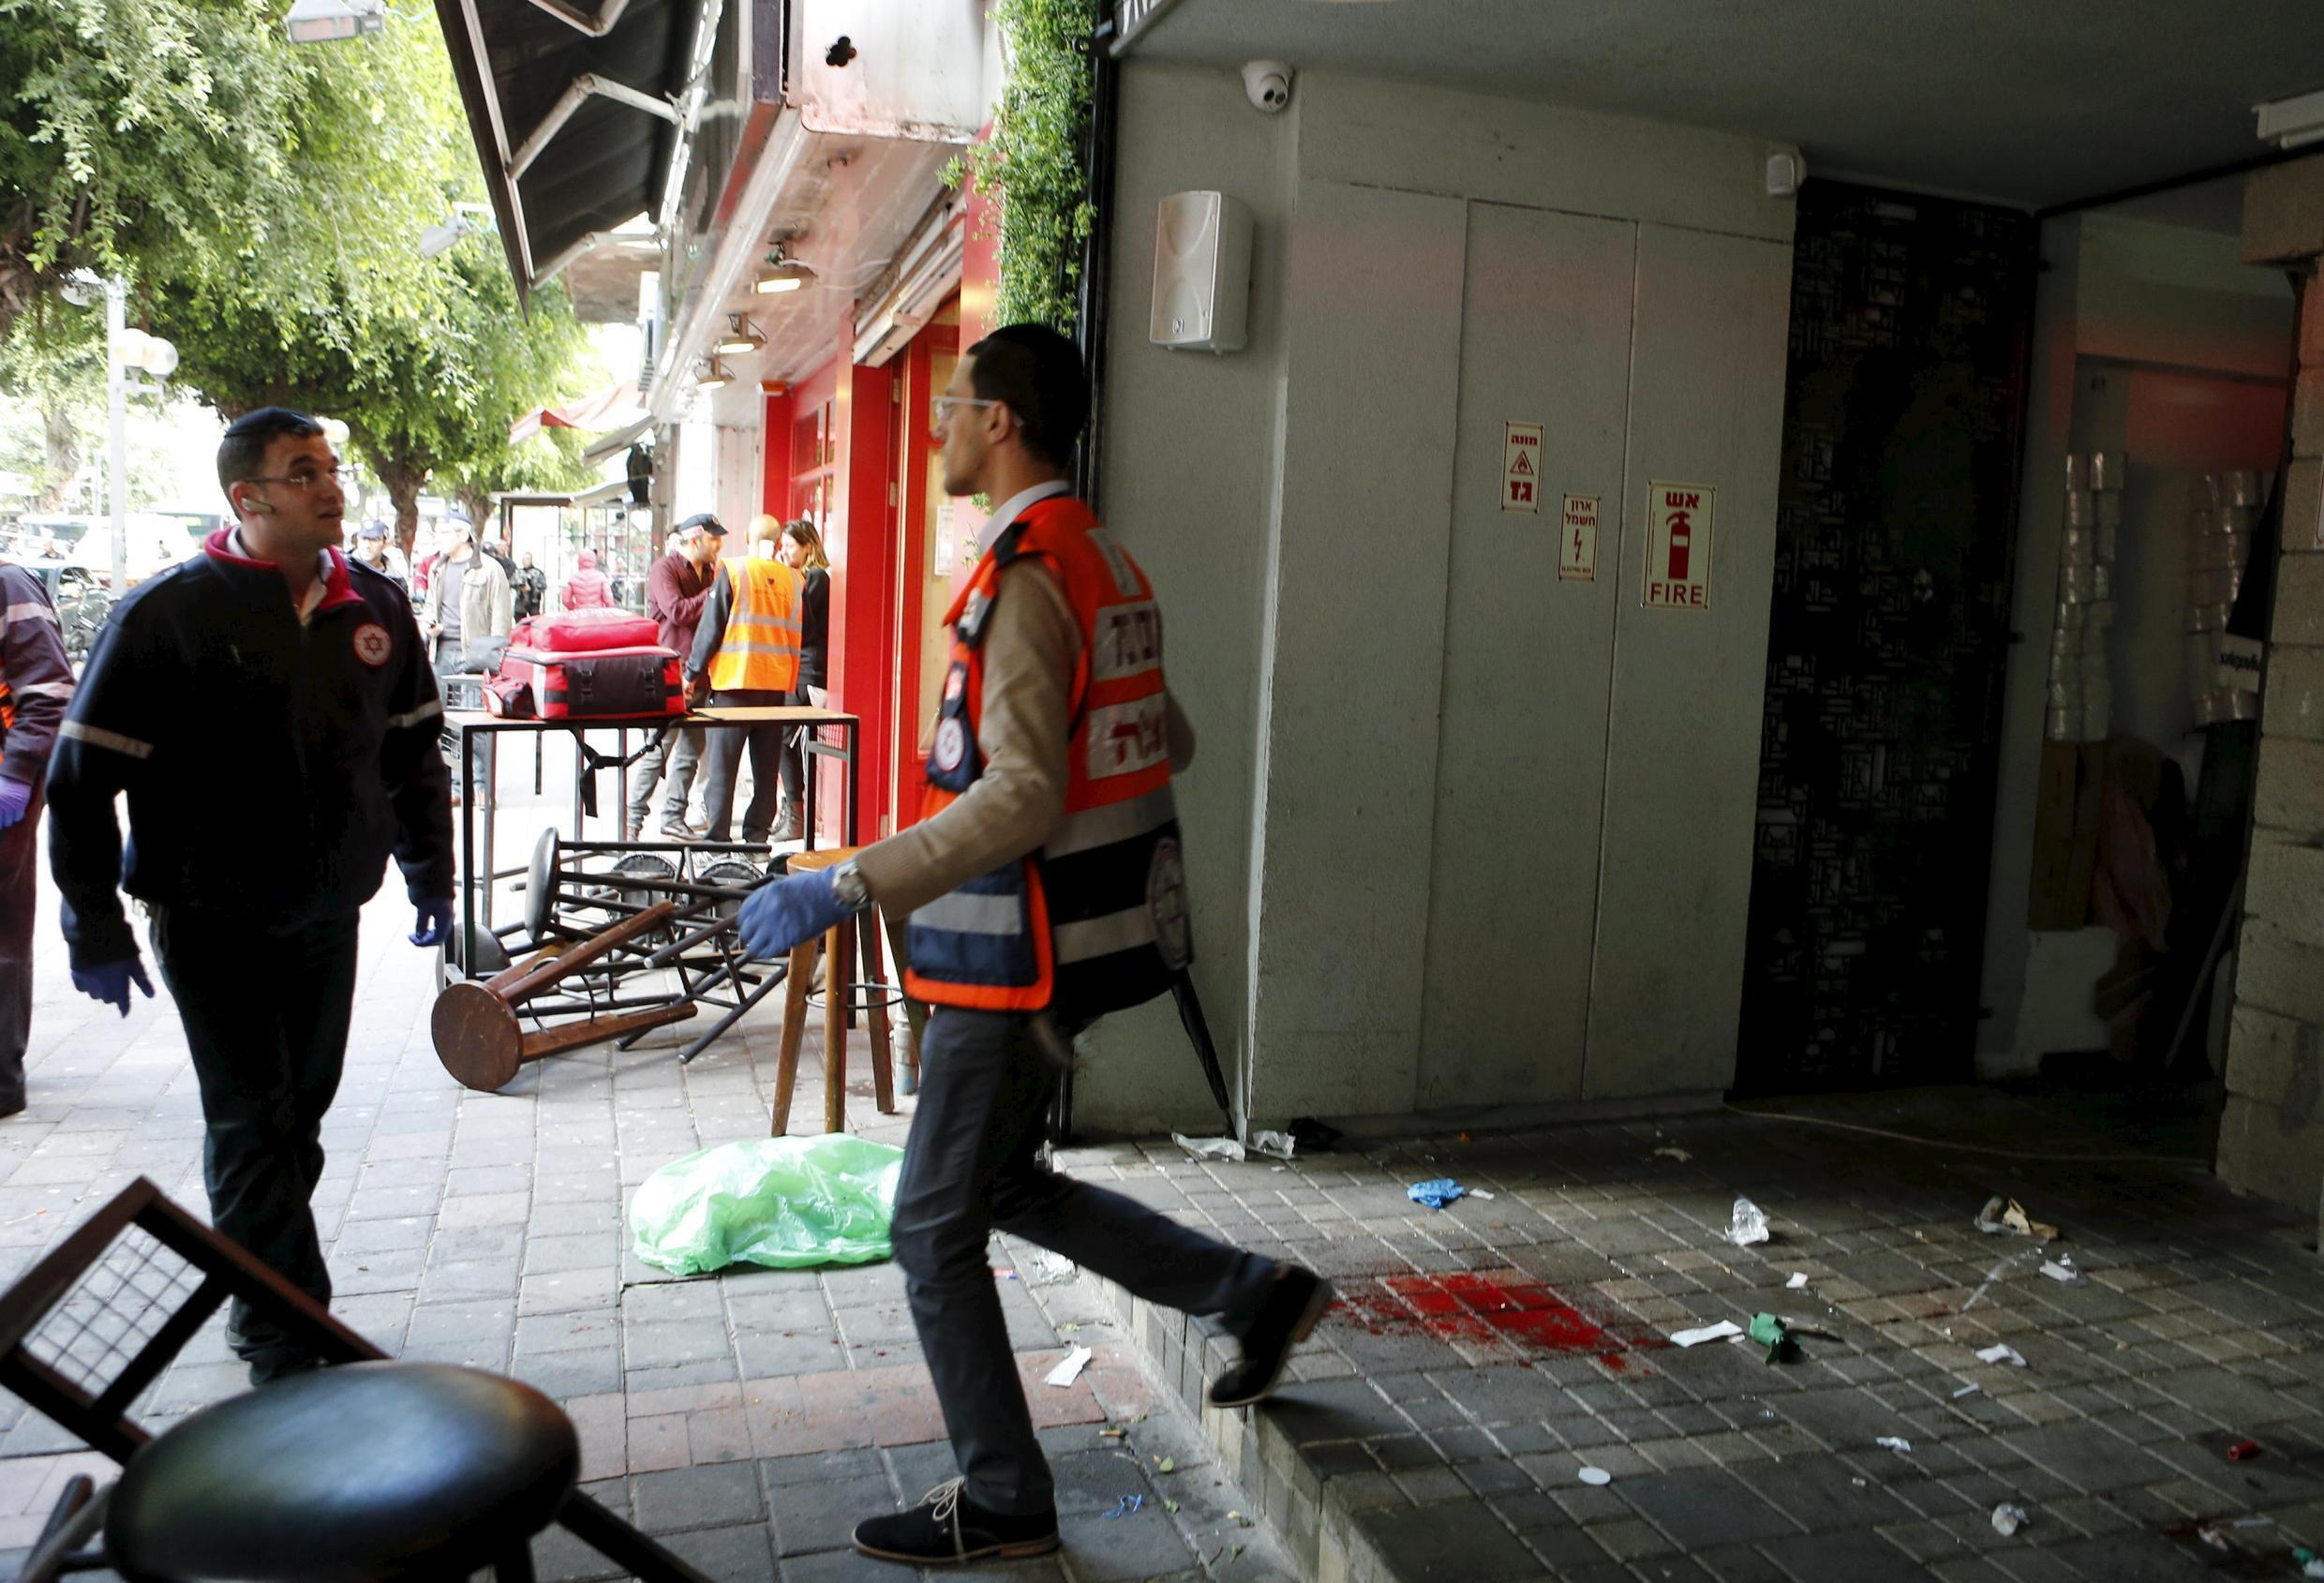 Rescue personnel walk next to blood stains at the scene of a shooting incident in Tel Aviv, Israel on 1 January, 2016.